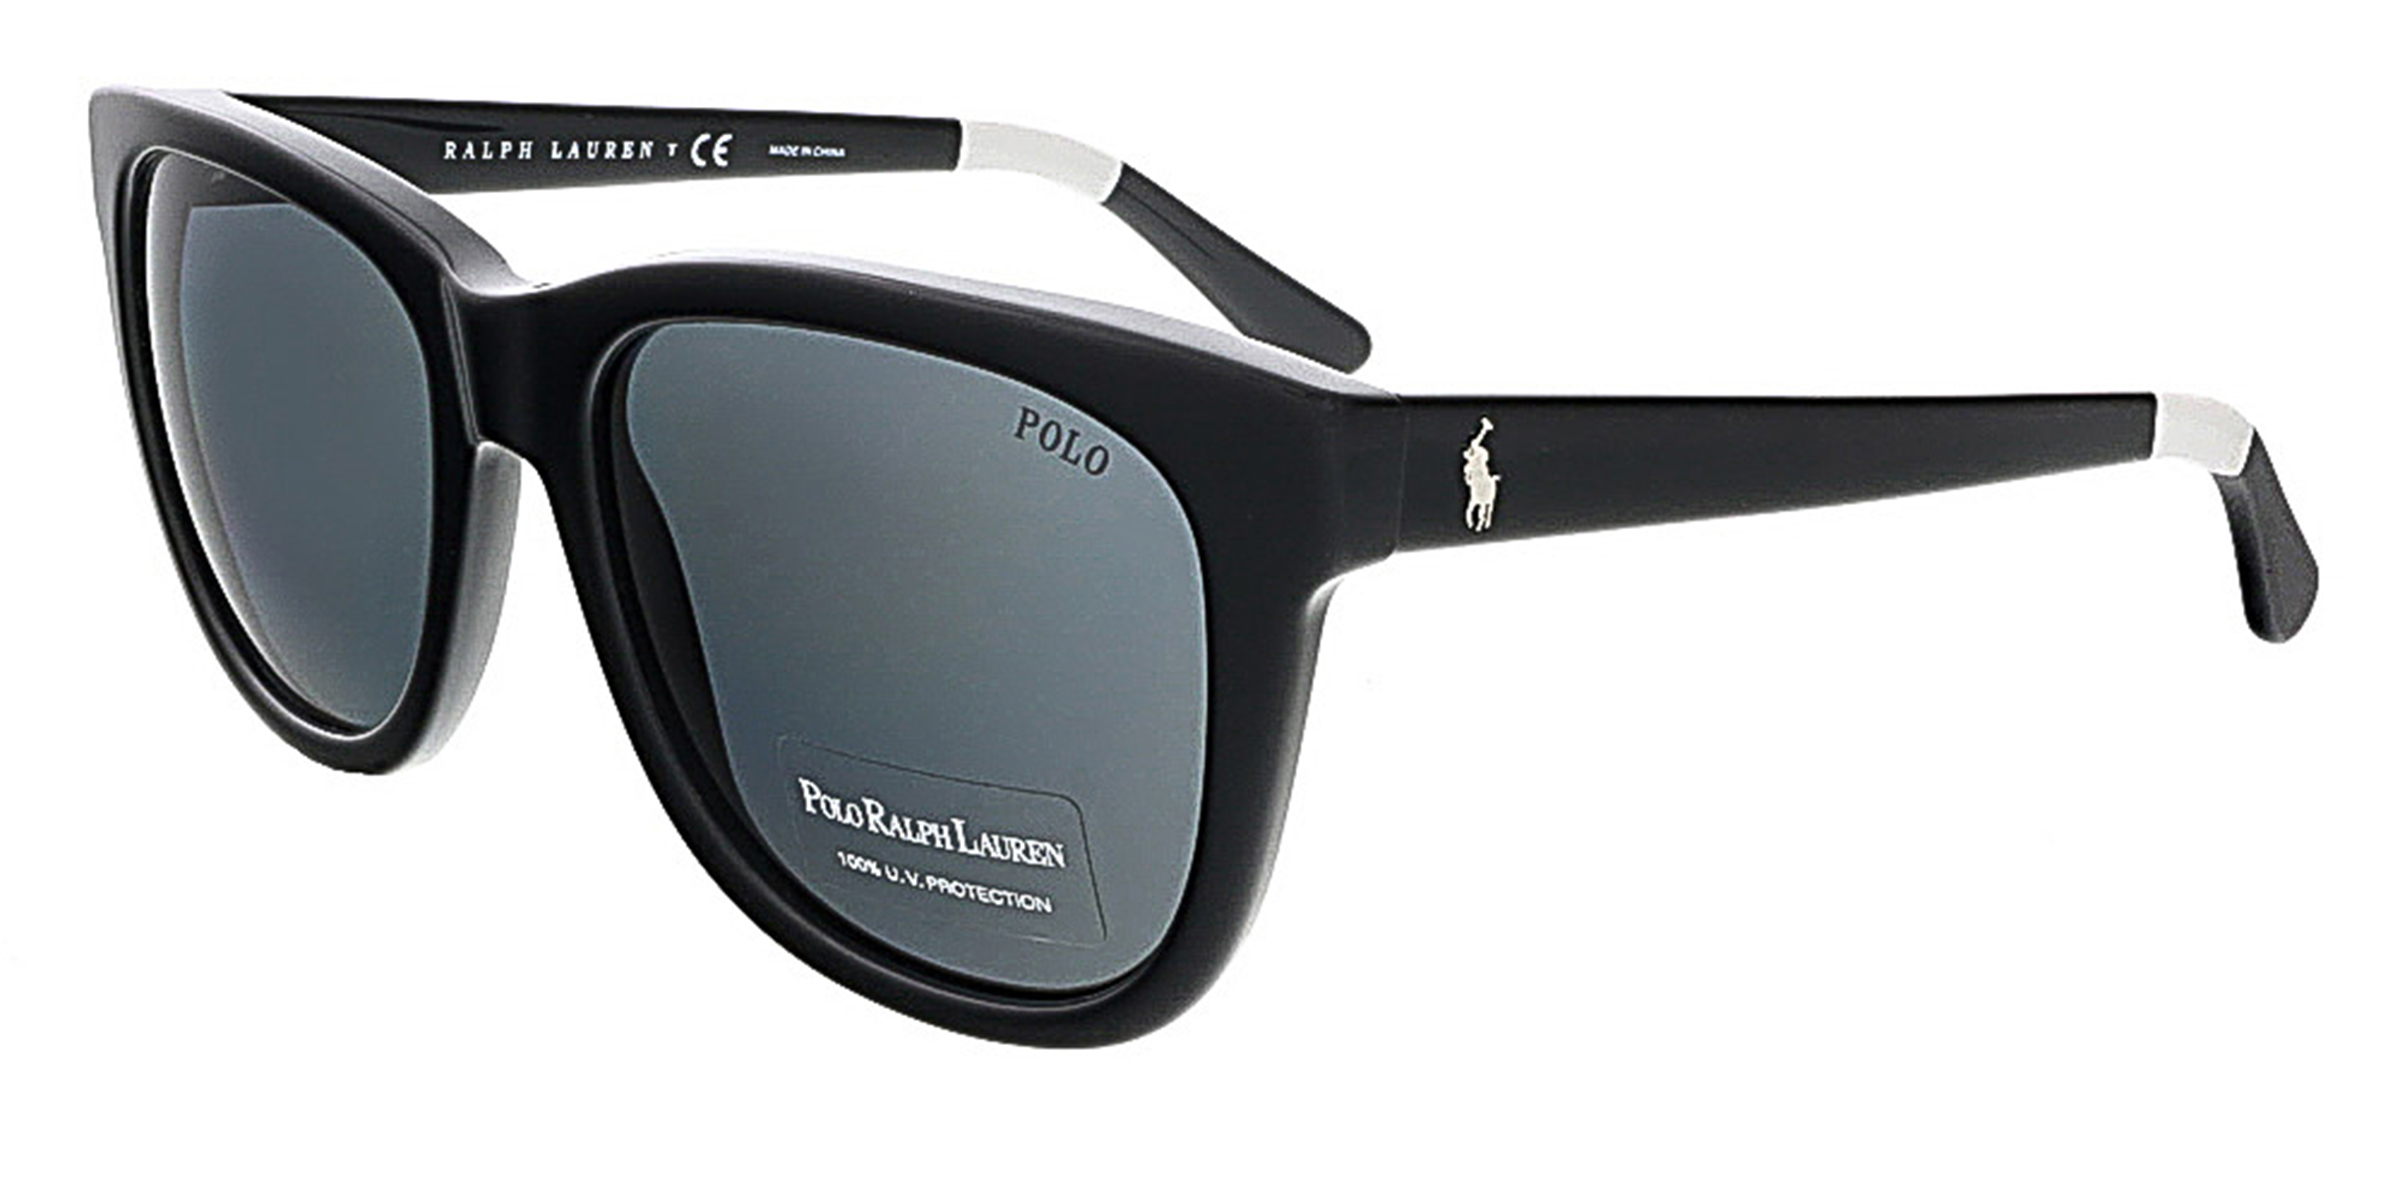 Polo Ralph Lauren PH4105 556987 Shiny Black Square Polo Ralph Lauren sunglasses